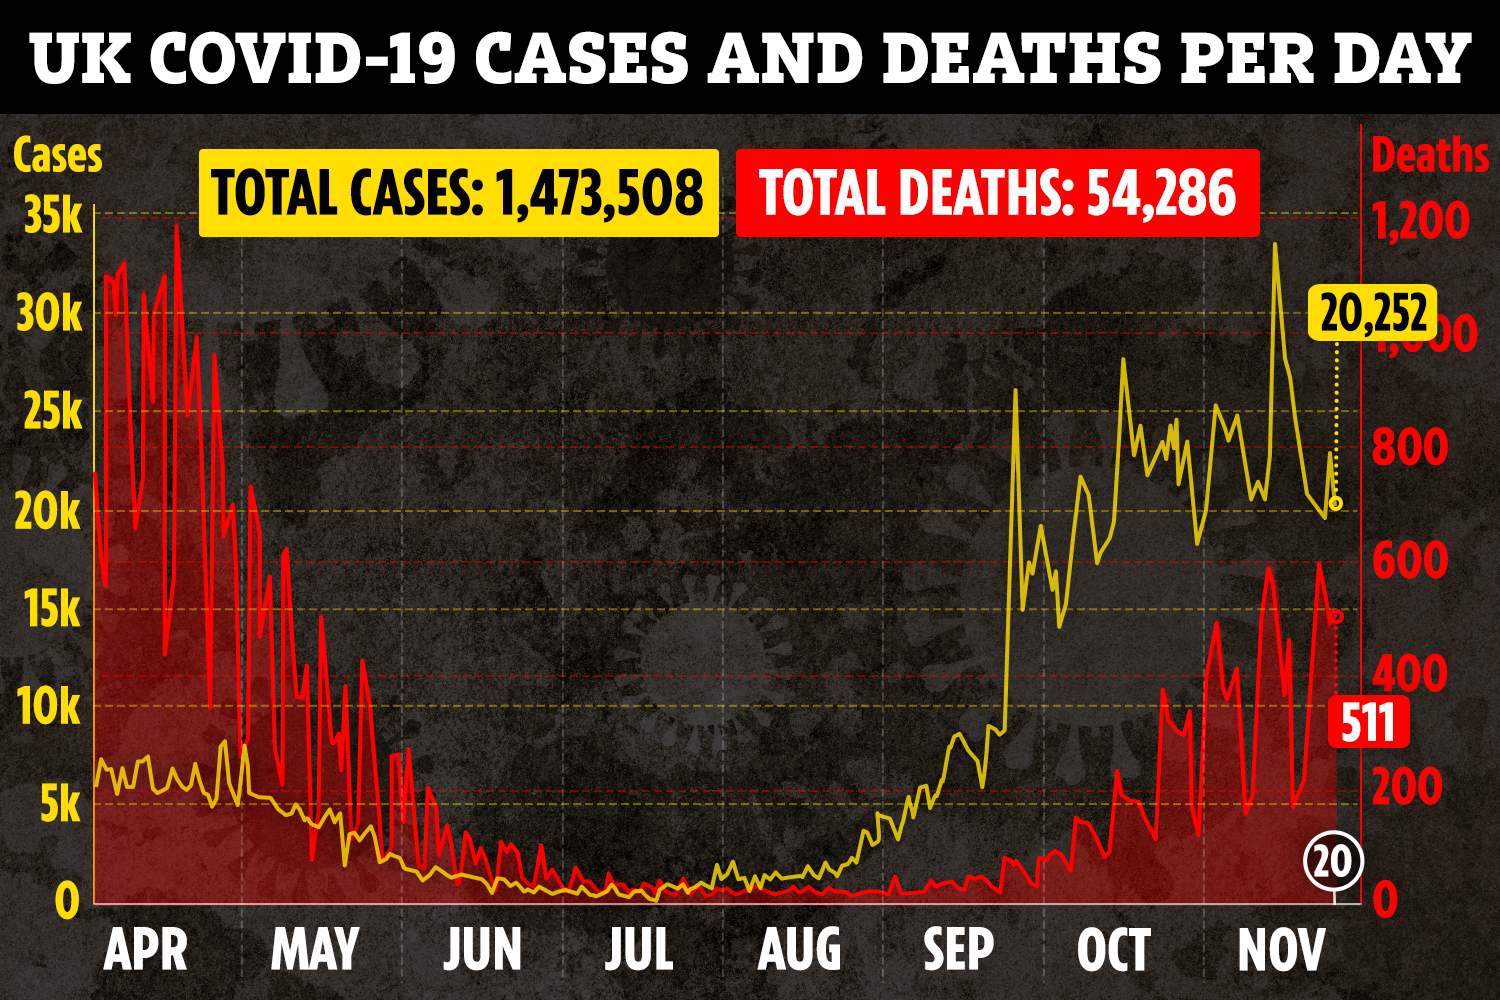 It's hoped the peak of the second wave is over as new cases begin to drop